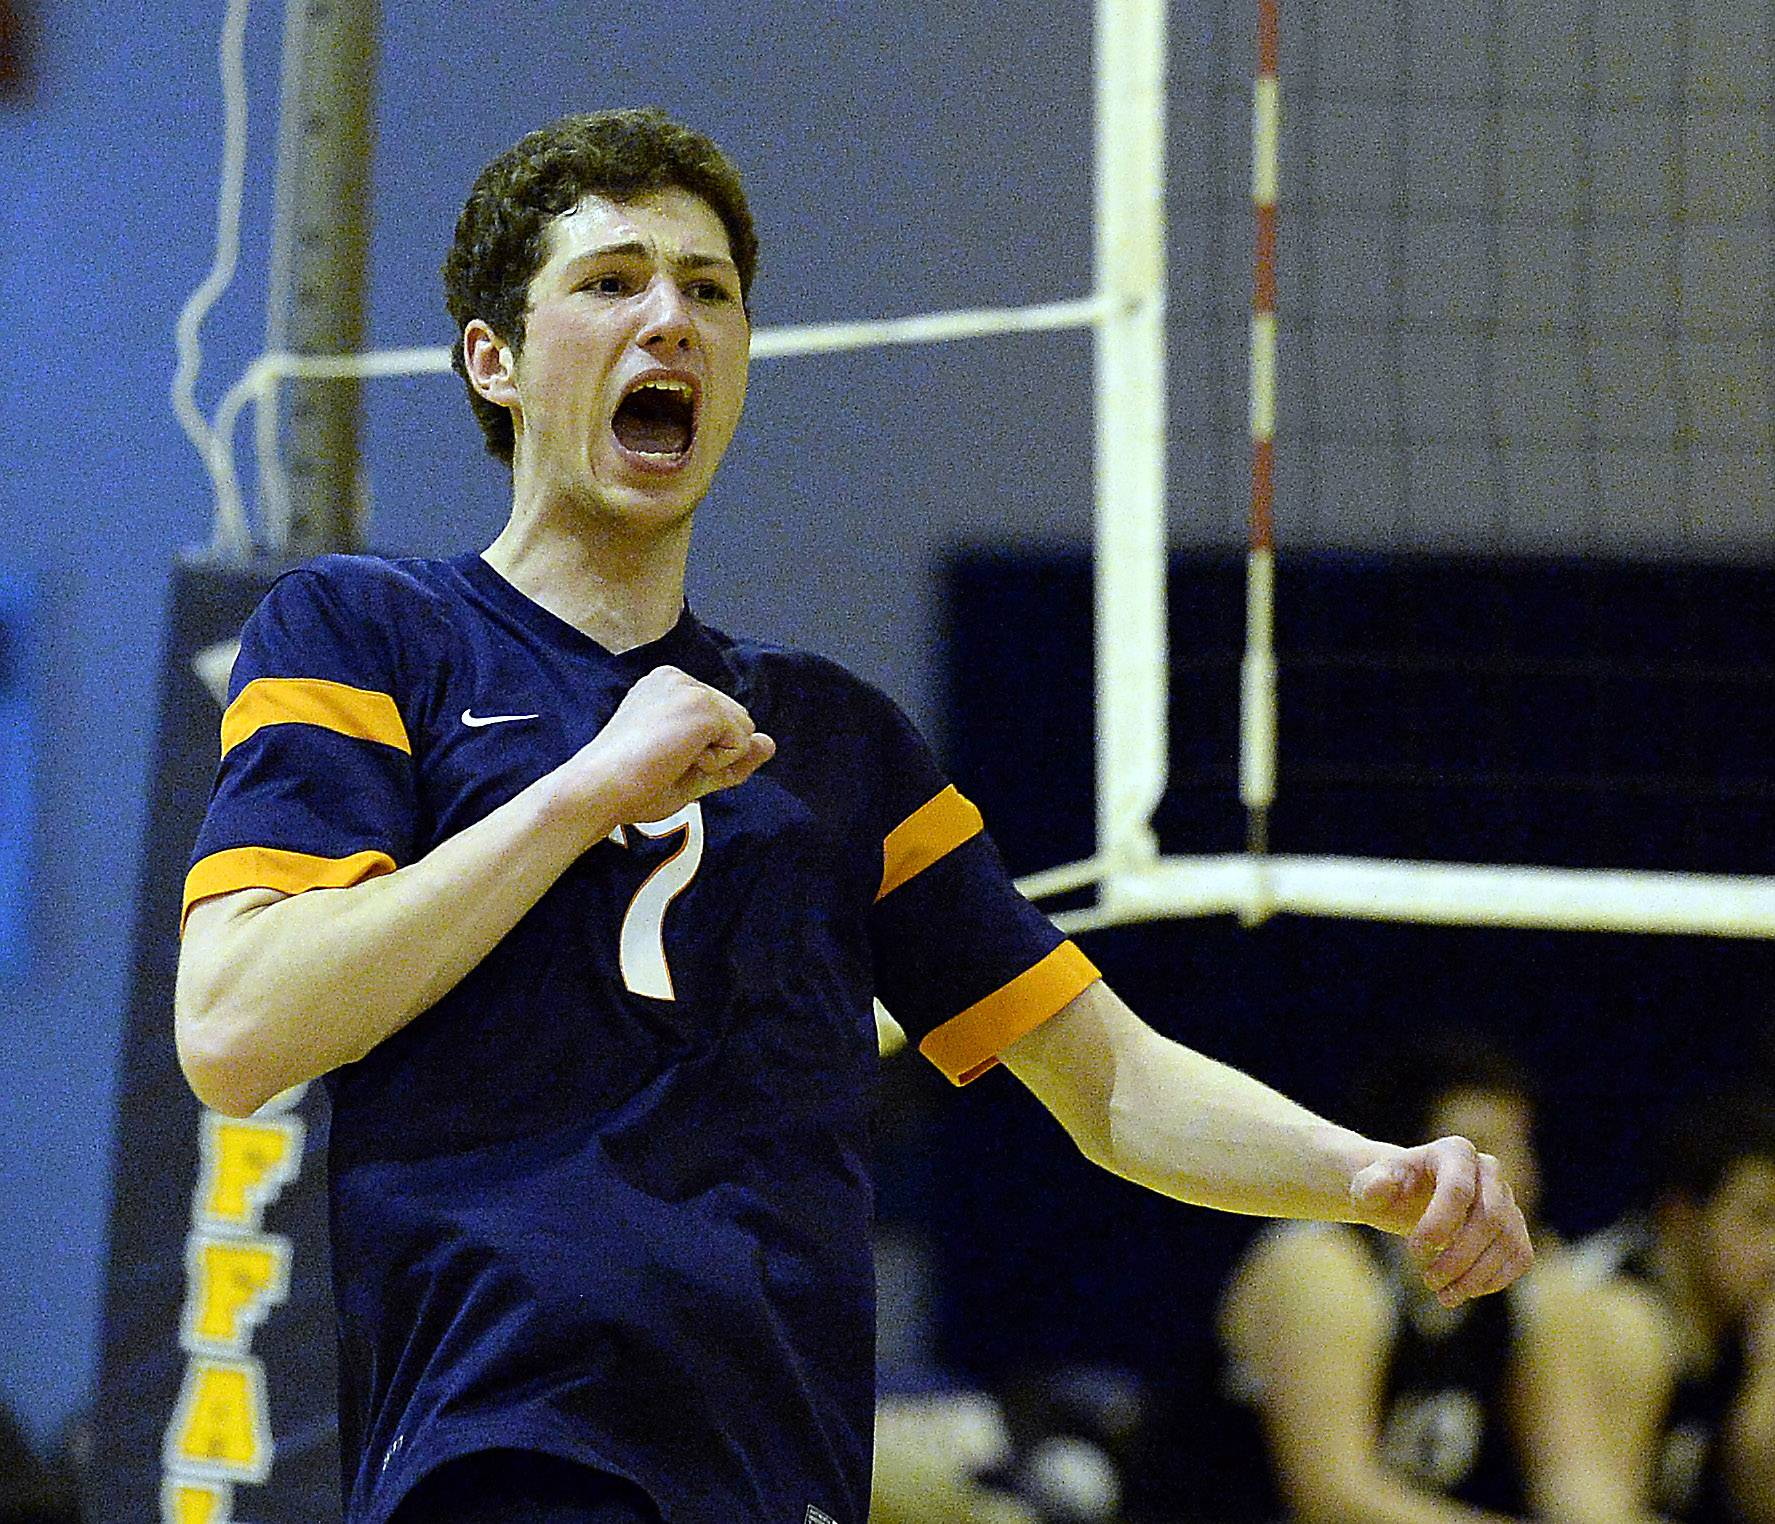 Buffalo Grove's Nikita Bulauski celebrates a point during Thursday's volleyball match in Buffalo Grove.